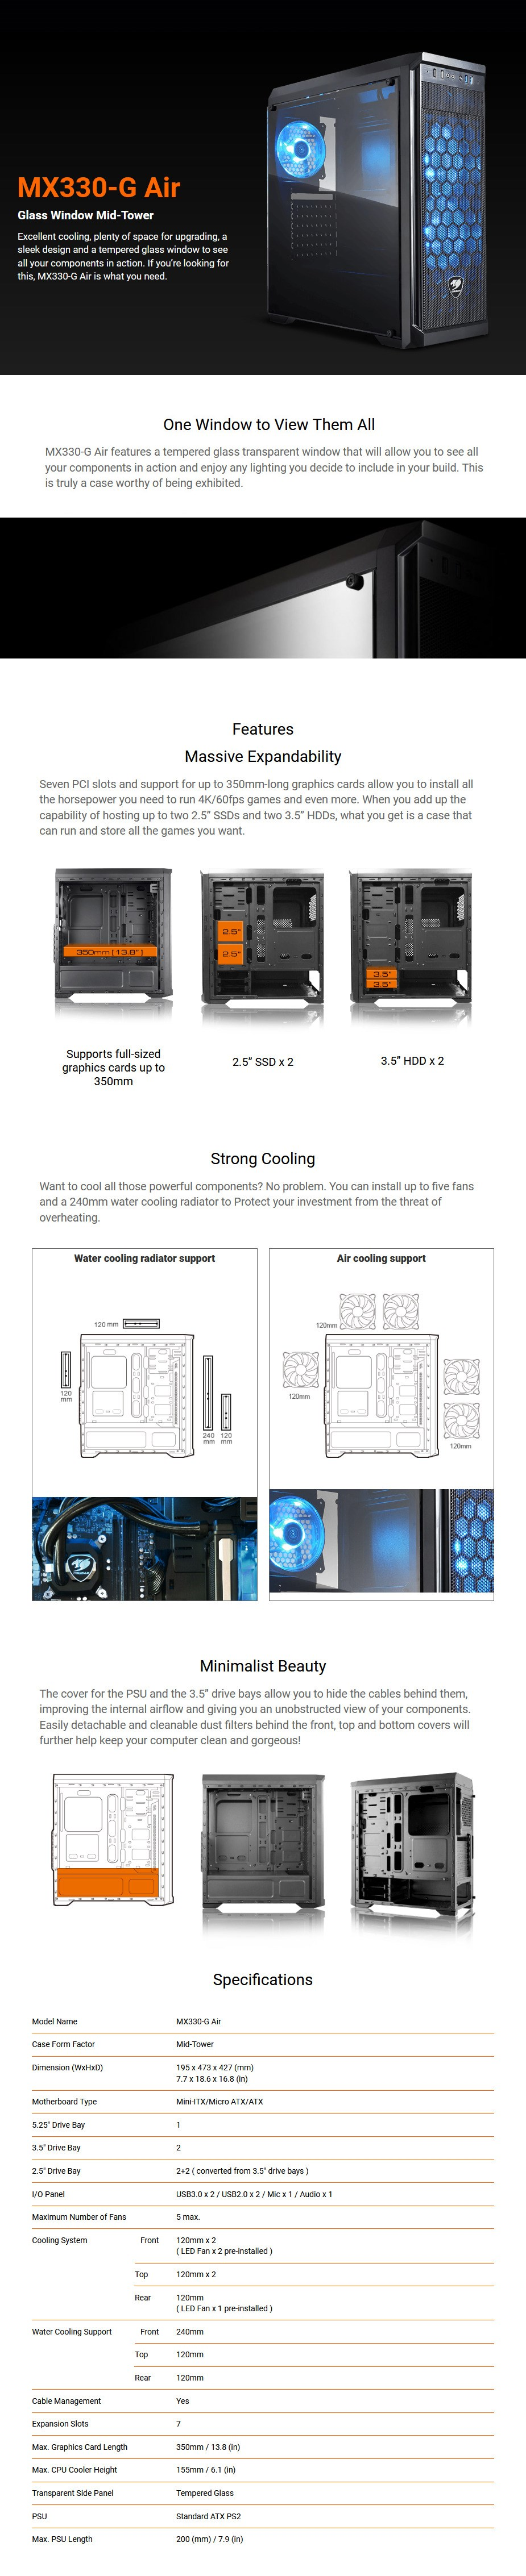 Cougar MX330-G Air Tempered Glass Mid-Tower ATX Case - Overview 1